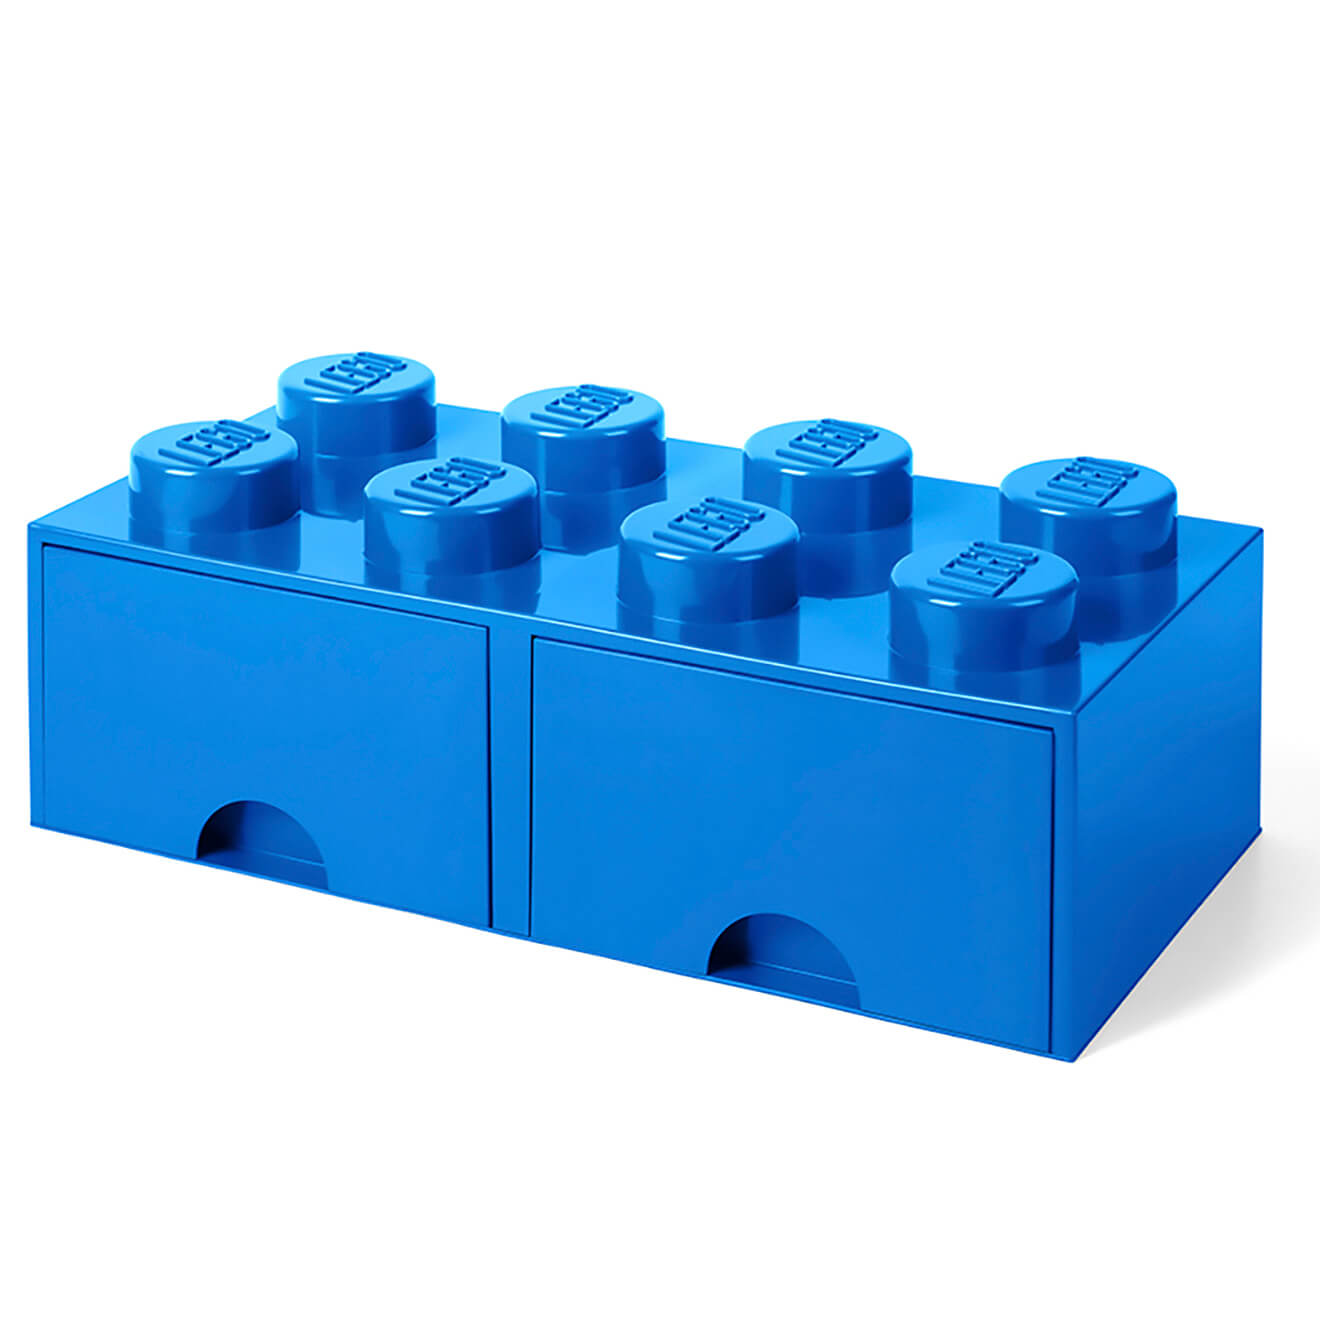 lego storage 8 knob brick 2 drawers bright blue iwoot. Black Bedroom Furniture Sets. Home Design Ideas